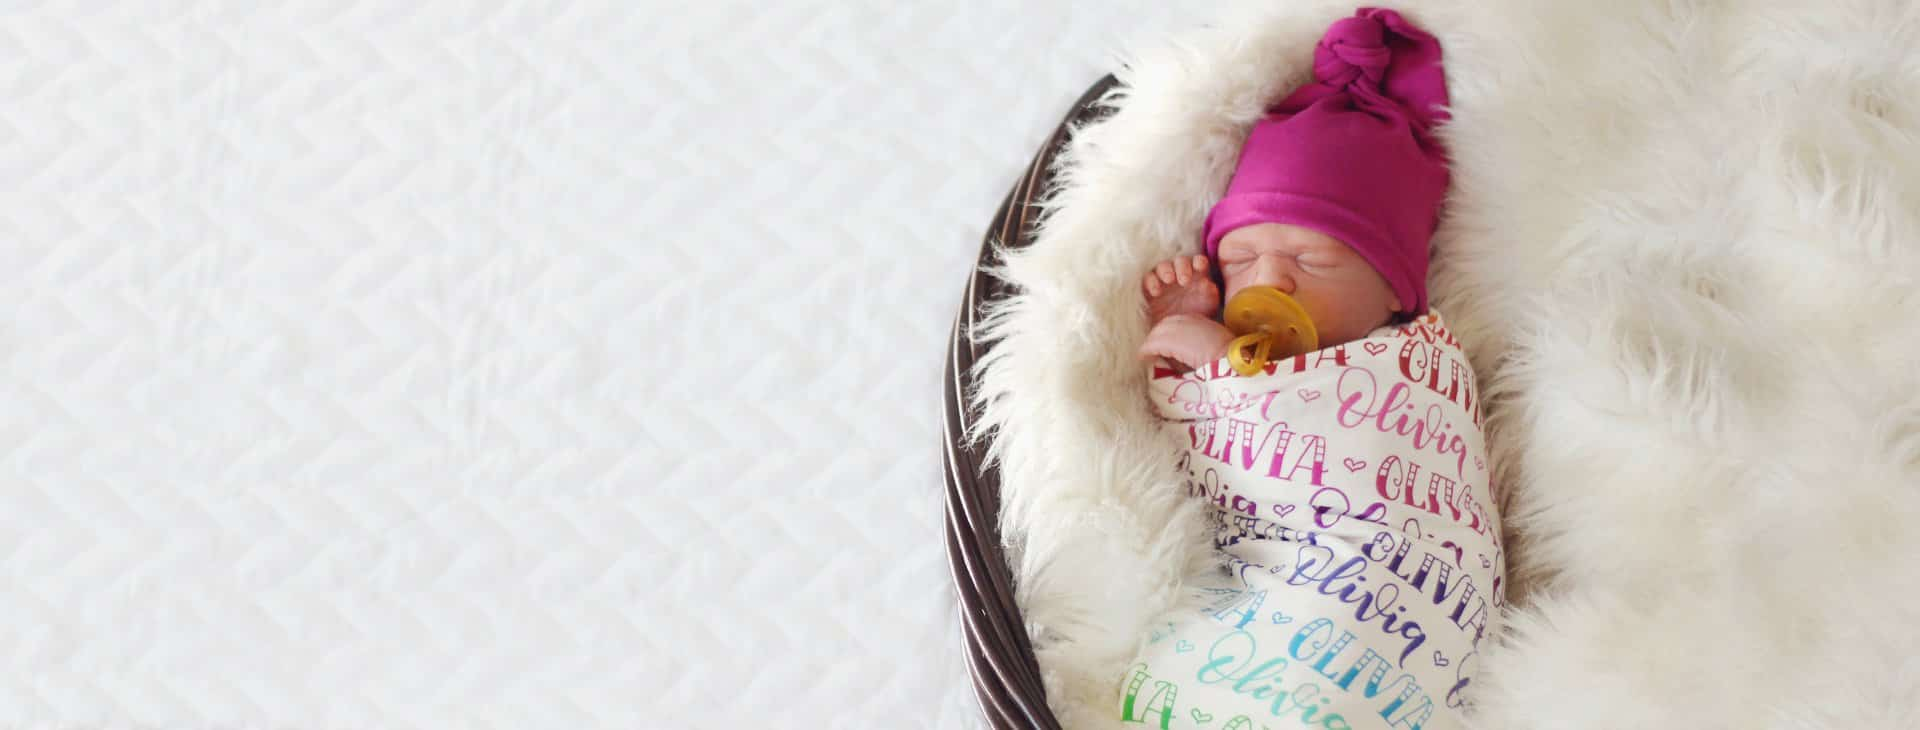 collections/WEBSITE-05_62cb5fd2-22ff-43d6-9b66-eb4472fa9ba3.jpg